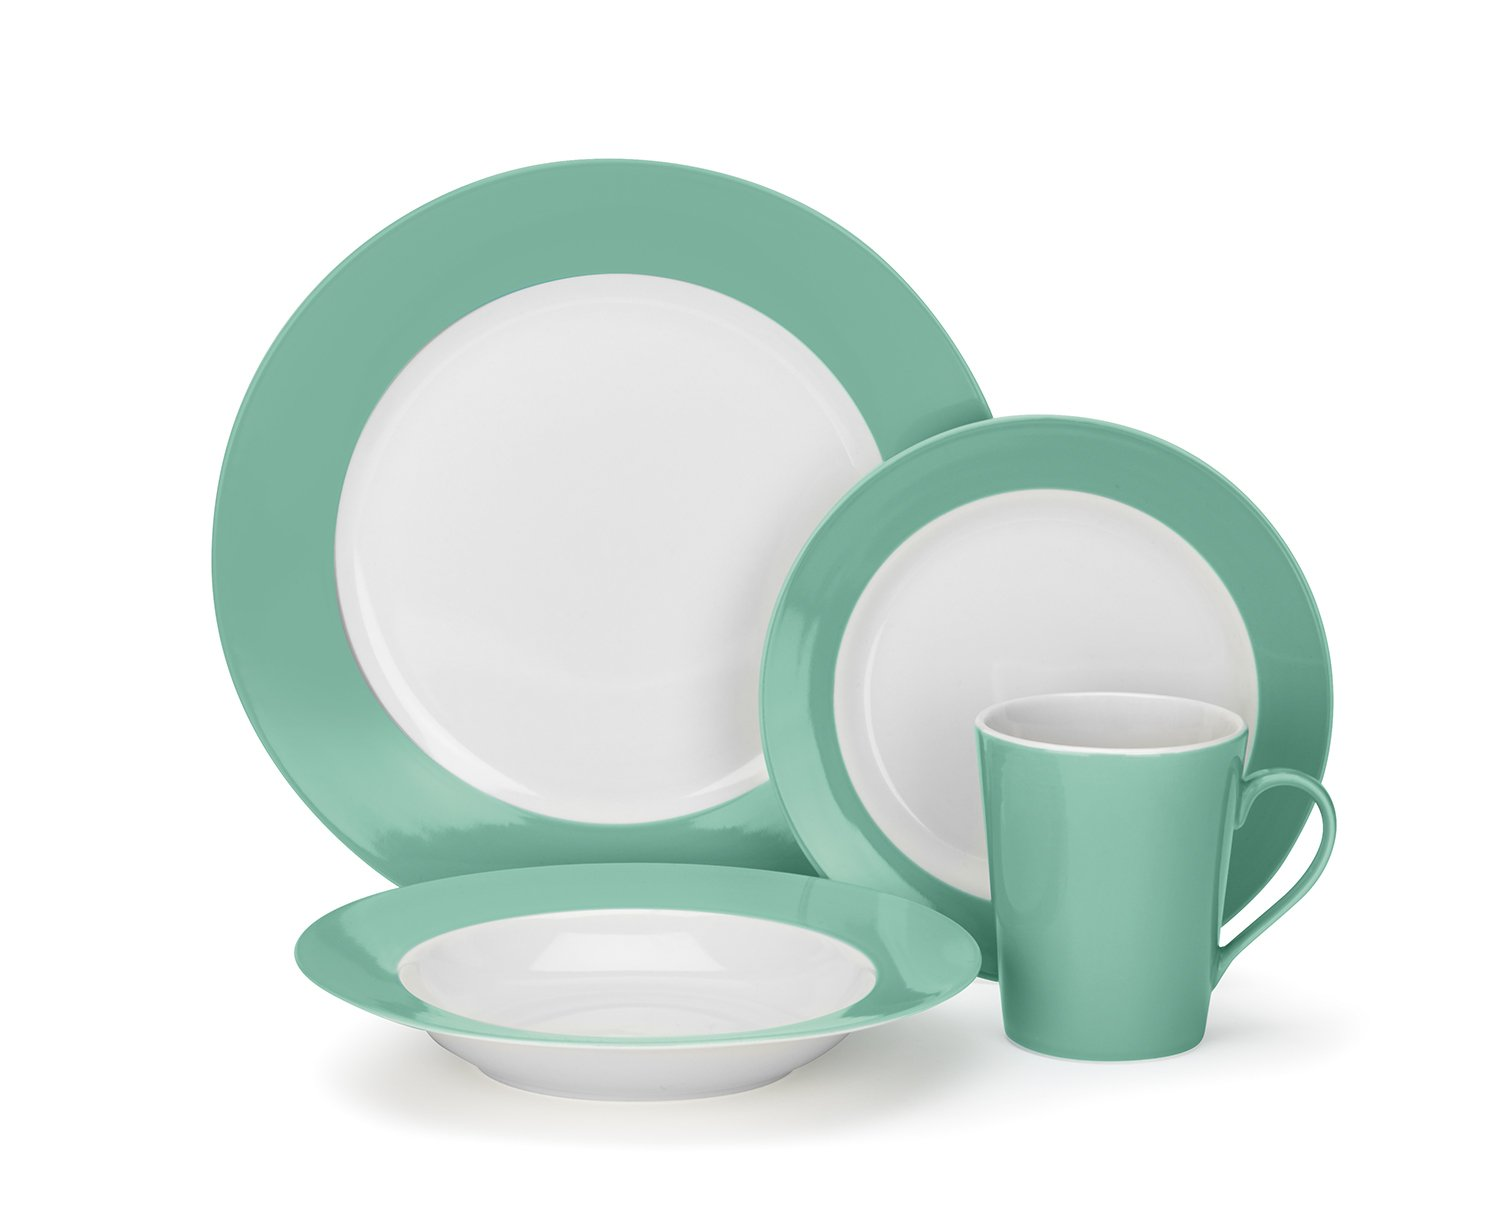 Amazon.com Cuisinart CDP01-S4WG Laurielle Collection 16-Piece Porcelain Dinnerware Set Kitchen u0026 Dining  sc 1 st  Amazon.com & Amazon.com: Cuisinart CDP01-S4WG Laurielle Collection 16-Piece ...